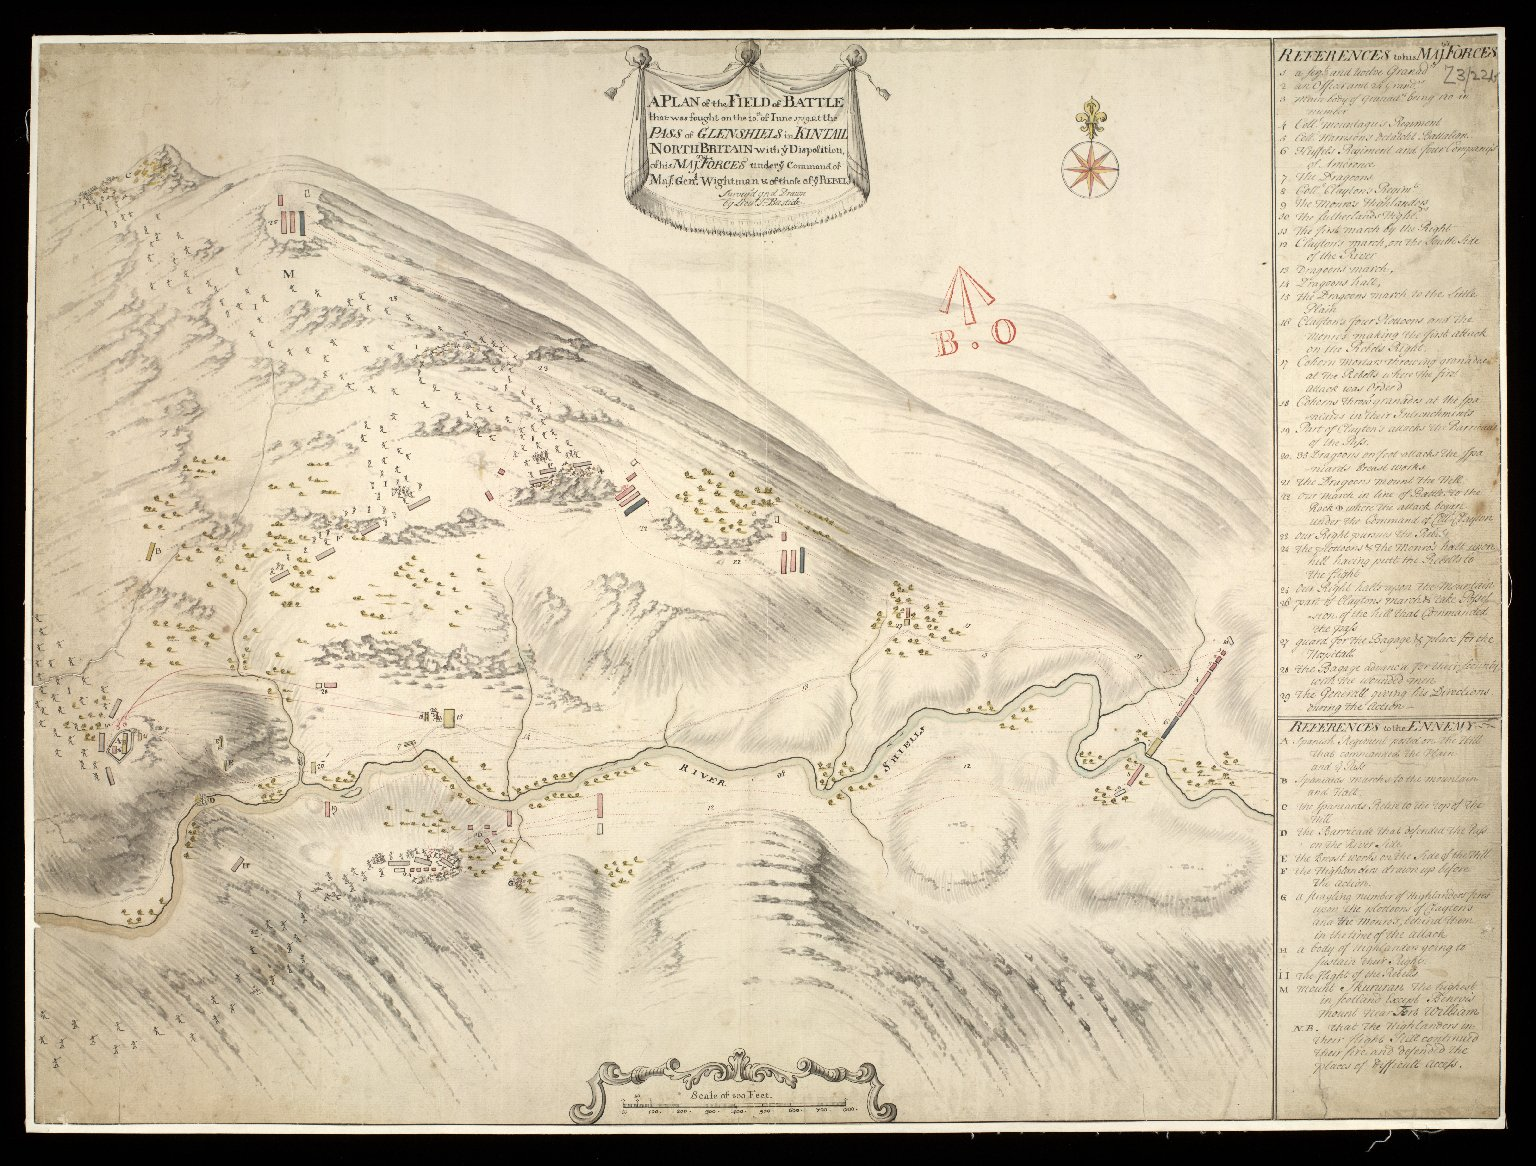 A Plan of the Field of Battle that was fought on the 10th of Iune 1719, at the Pass of Glenshiels in Kintail North Britain with ye Disposition of his Majtys Forces under ye Command of Majr. Genl. Wightman, & of those of ye Rebels [copy] [1 of 1]